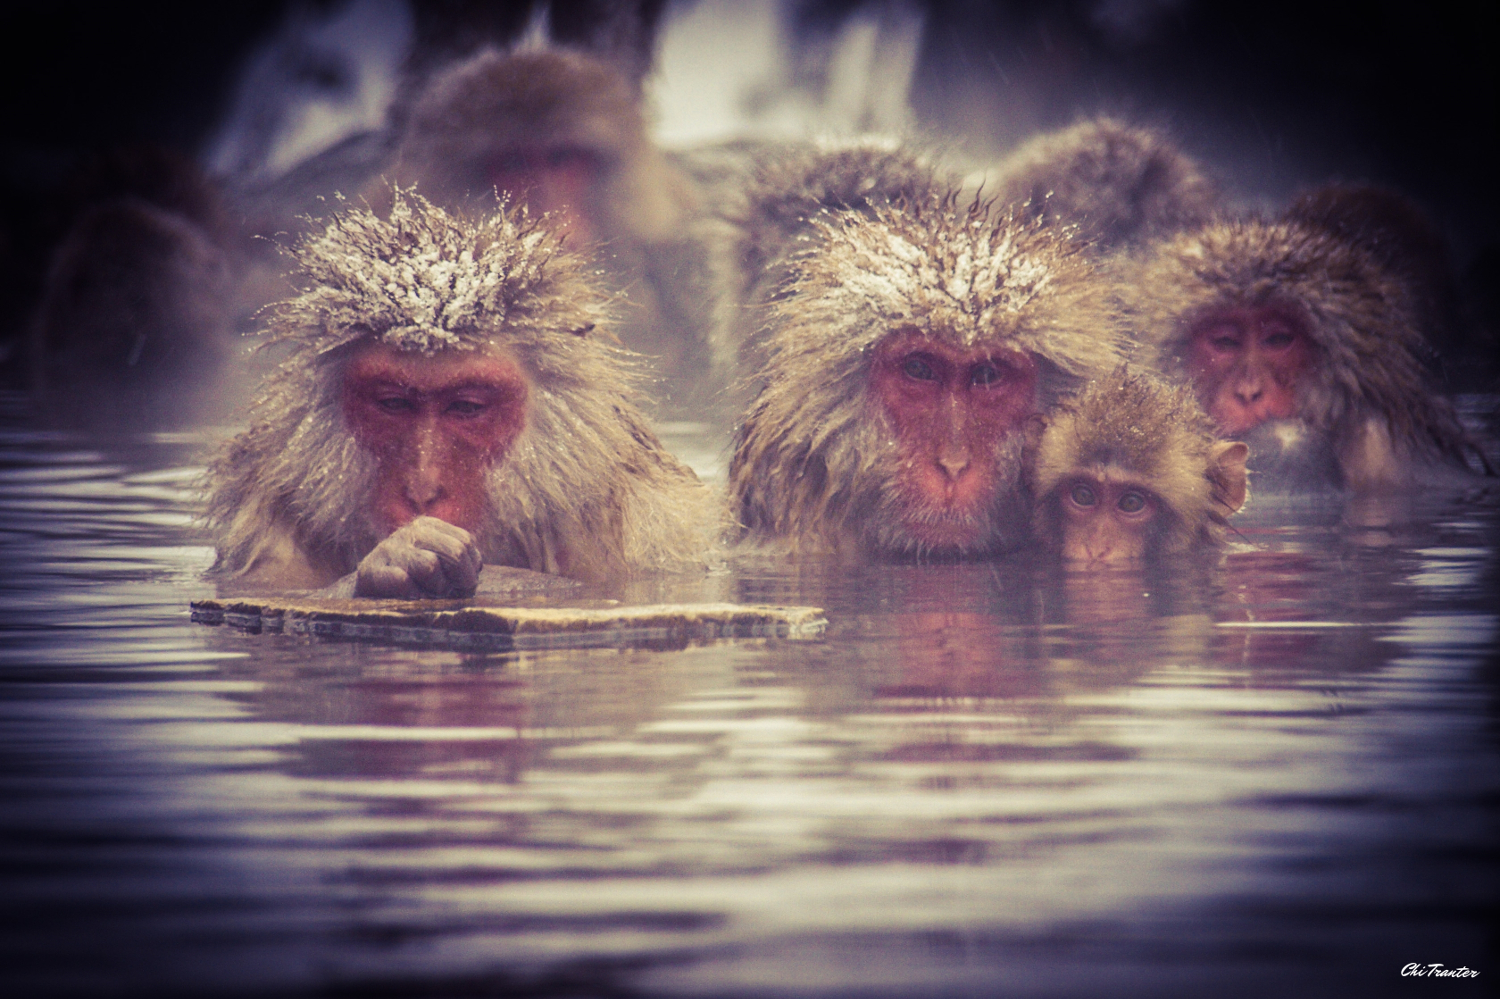 snow_monkeys_winter_514313_2.jpg